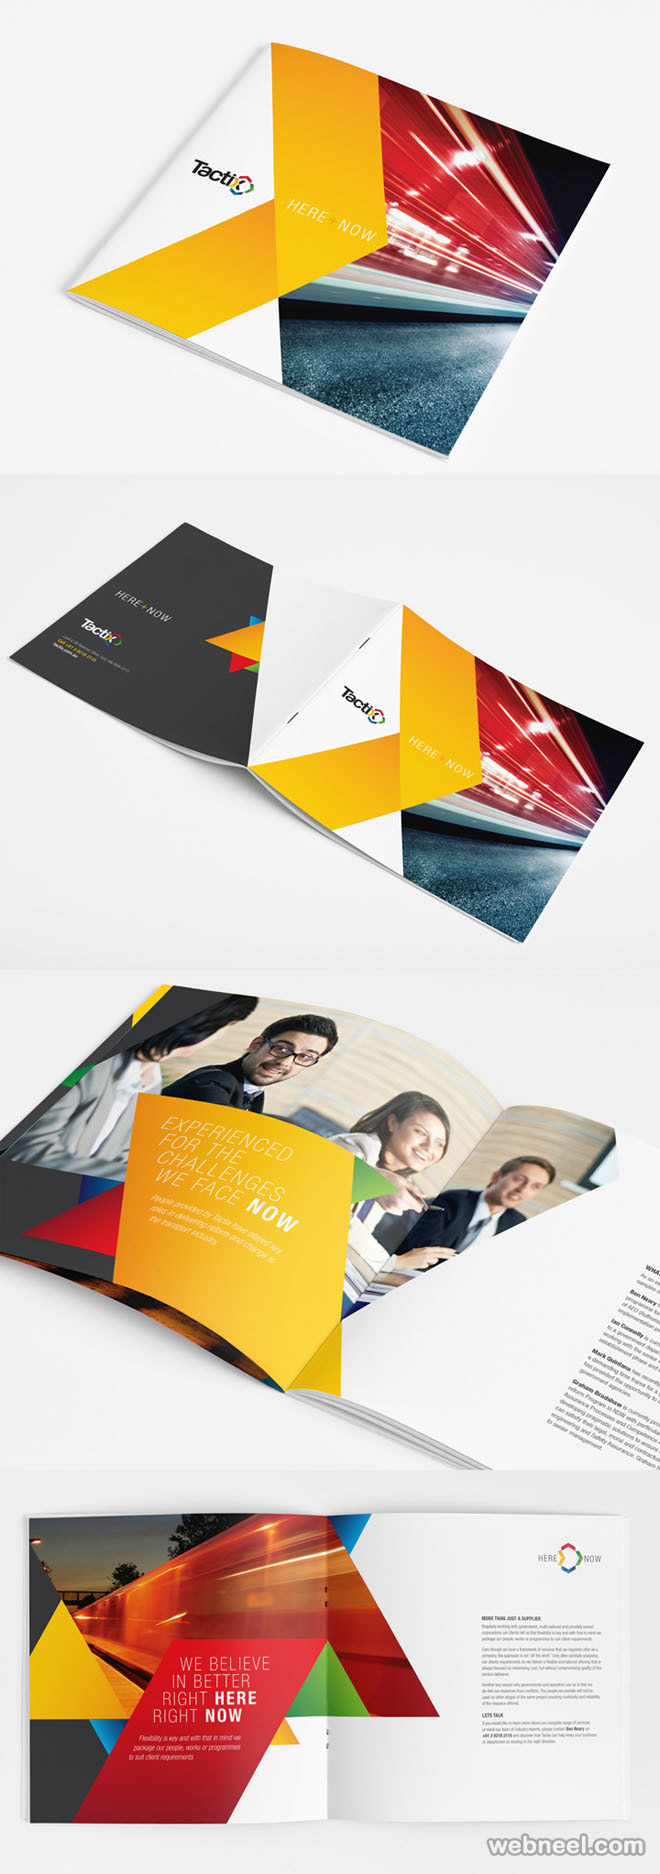 26 best and creative brochure design ideas for your for Interesting brochure designs